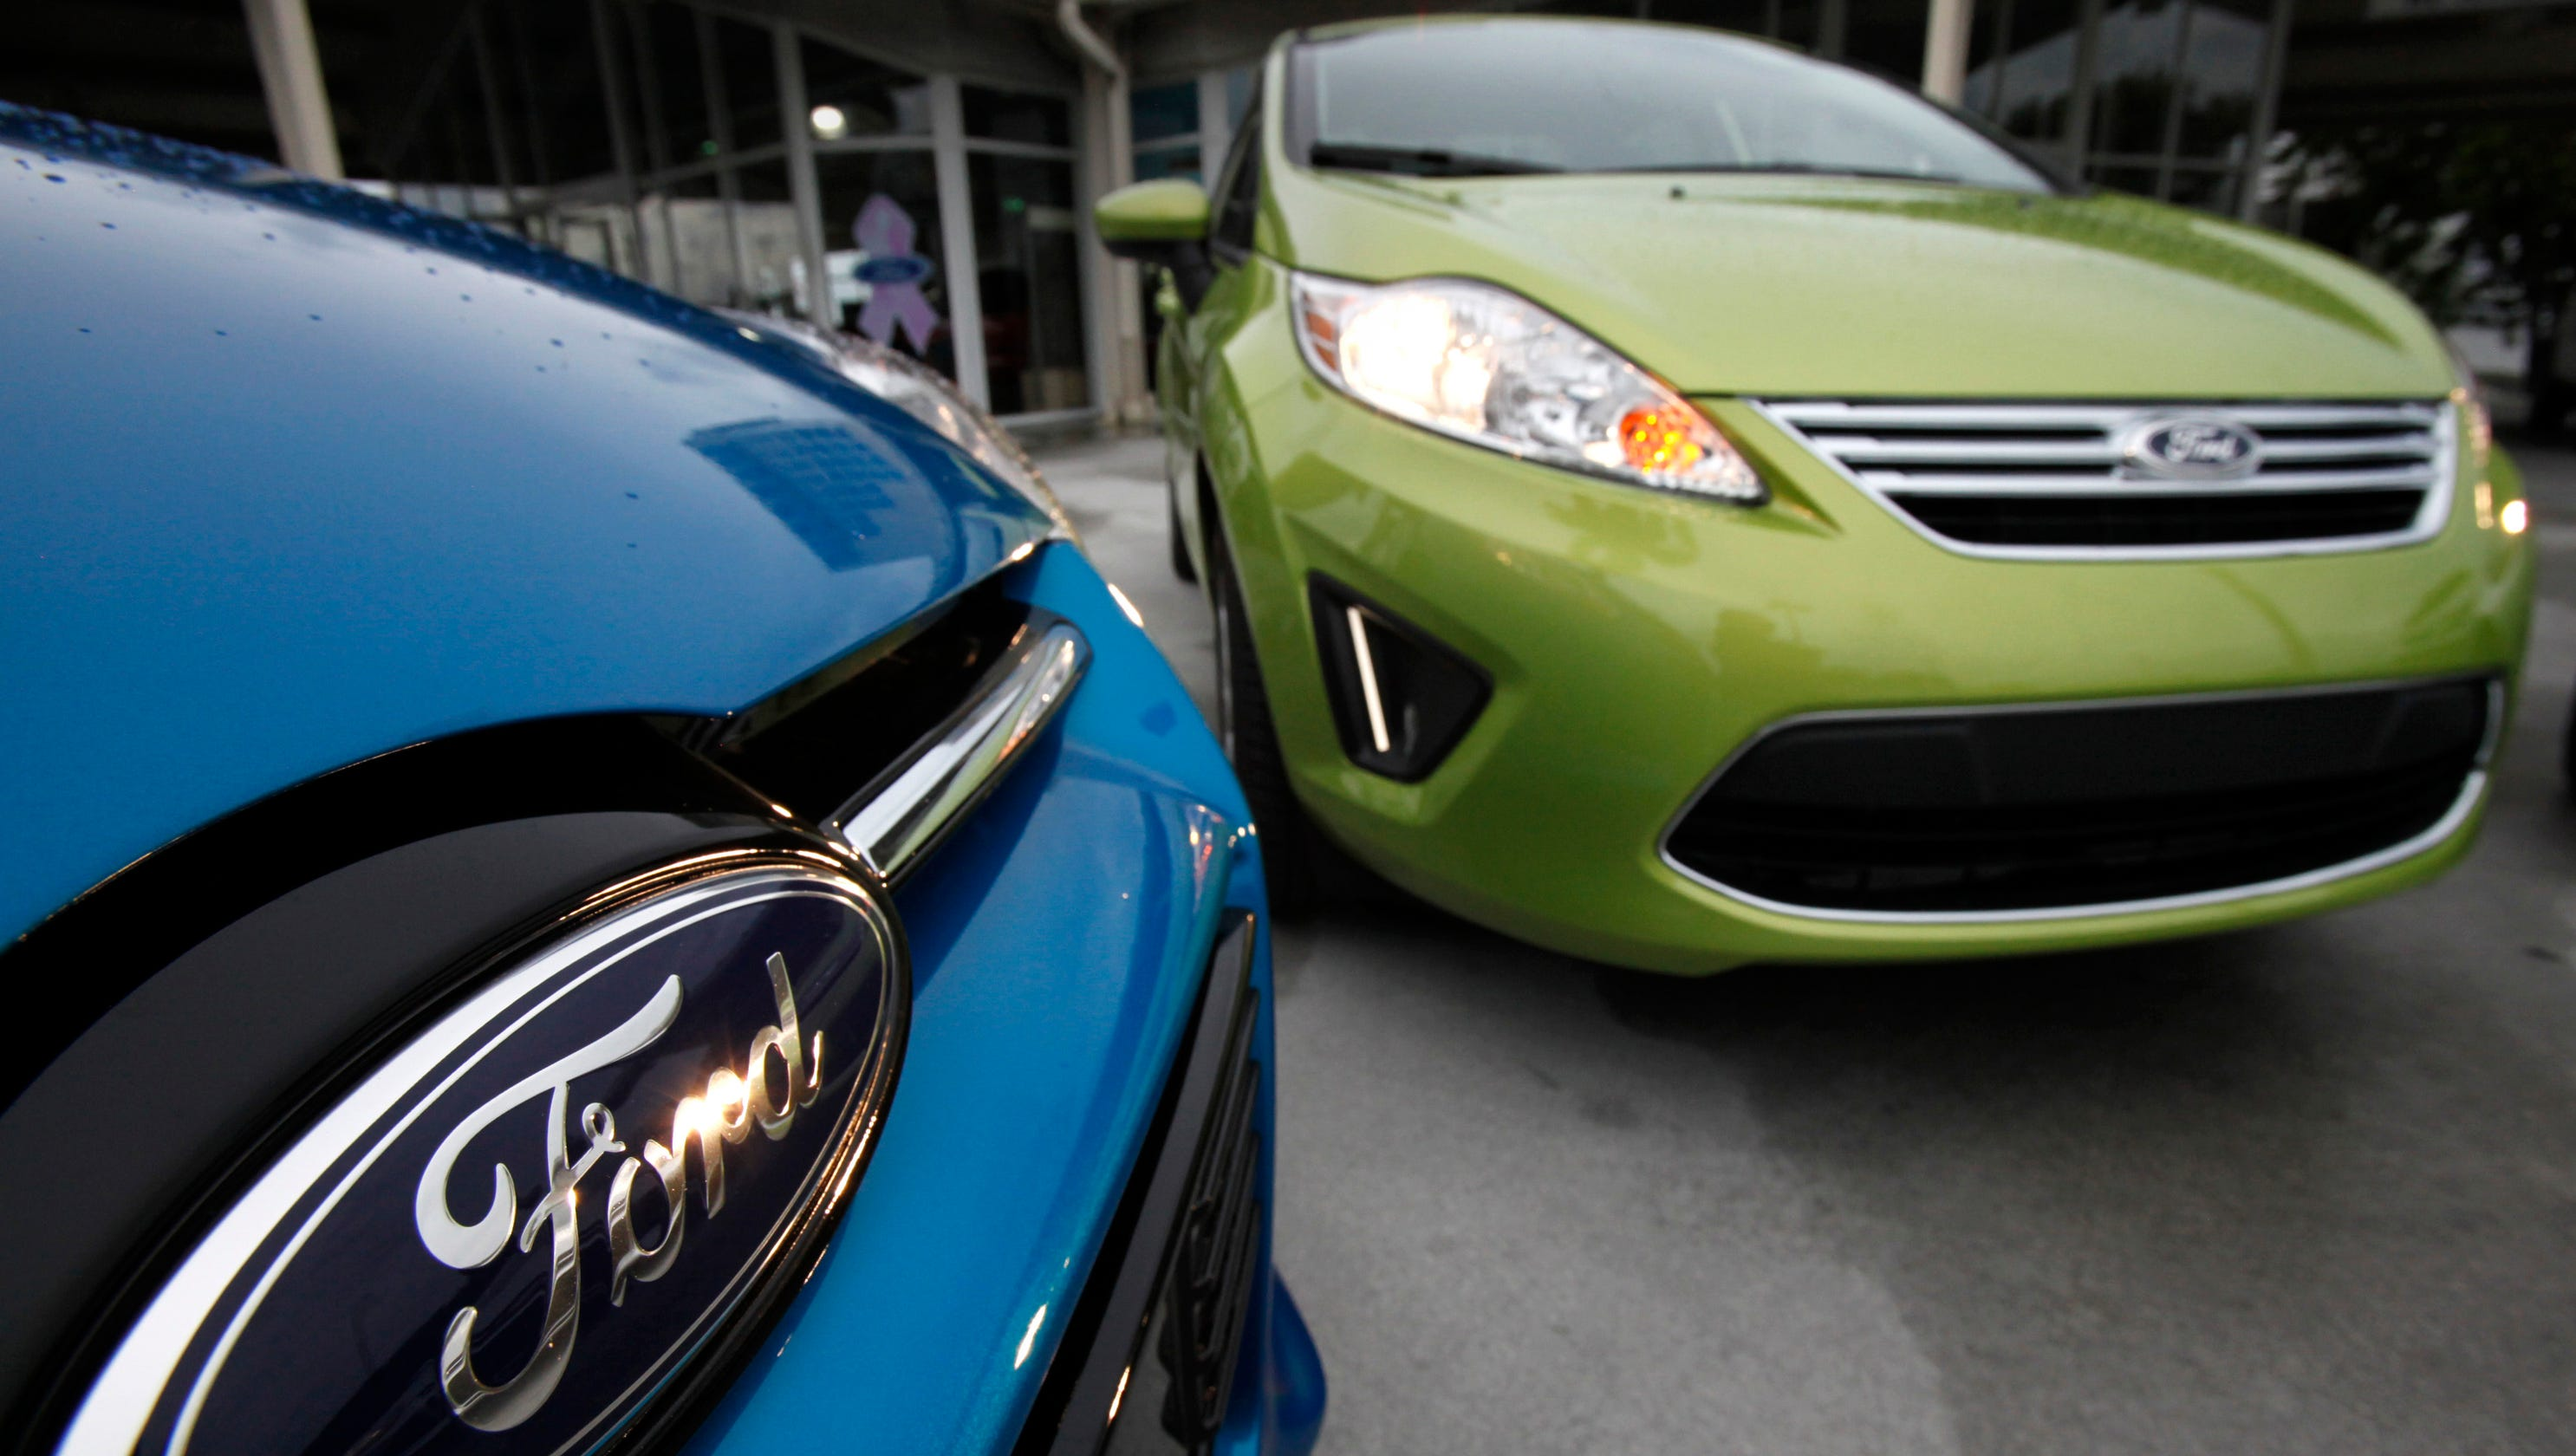 NHTSA says it's reviewing faulty Ford Focus, Fiesta transmissions